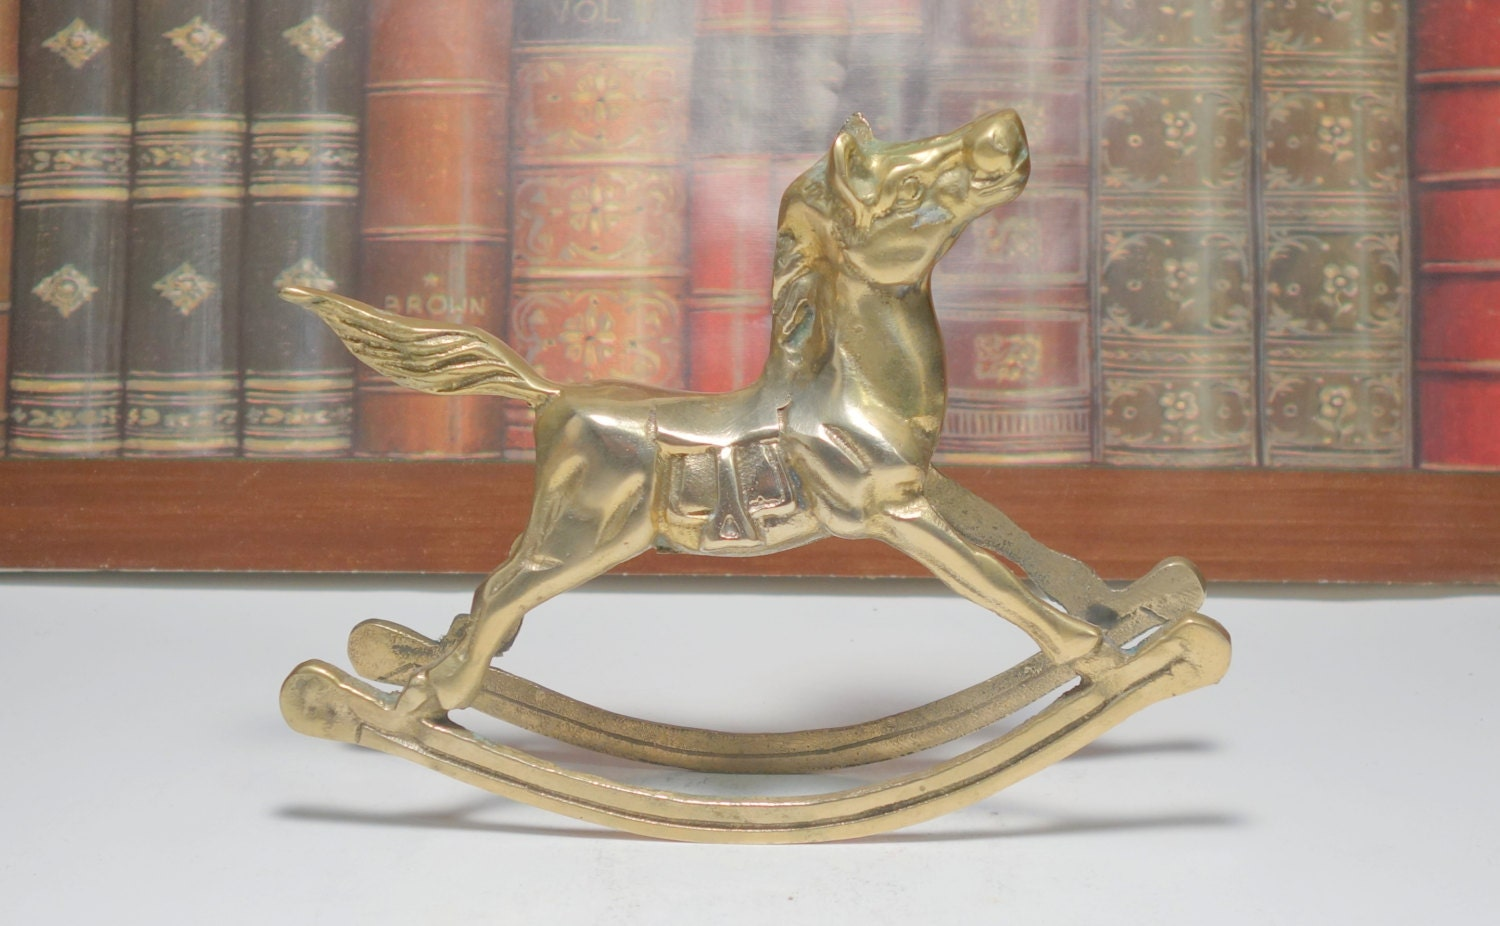 Vintage brass rocking horse home decor childs room decor for Horse decorations for home